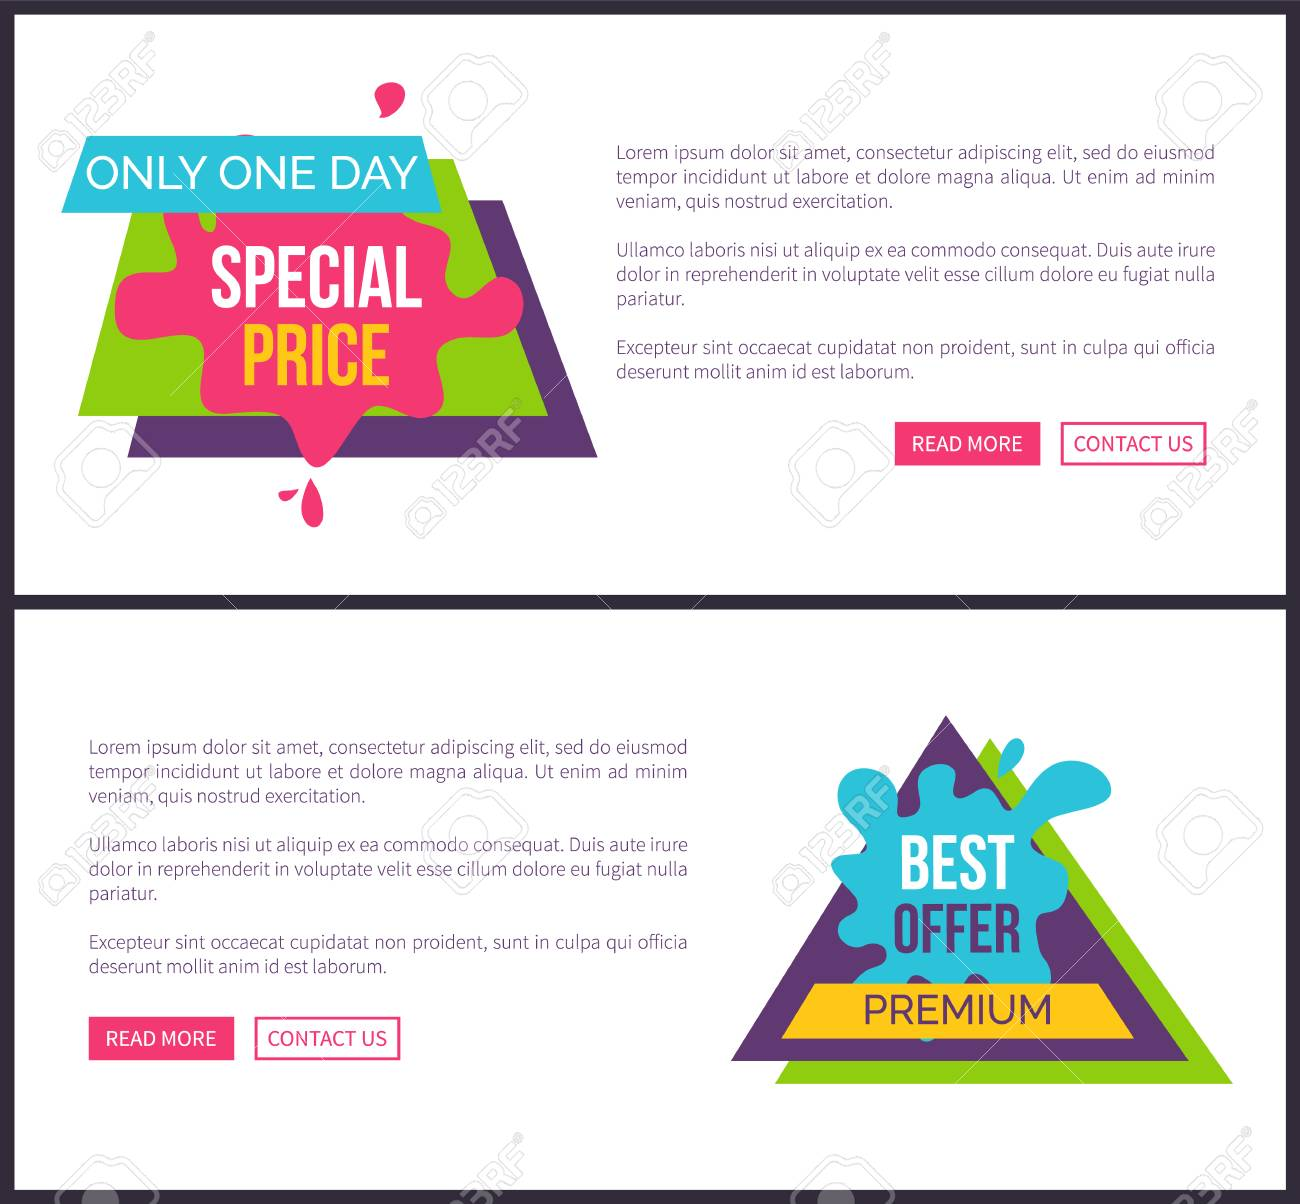 Only one day special price premium labels stickers stock vector 90839315